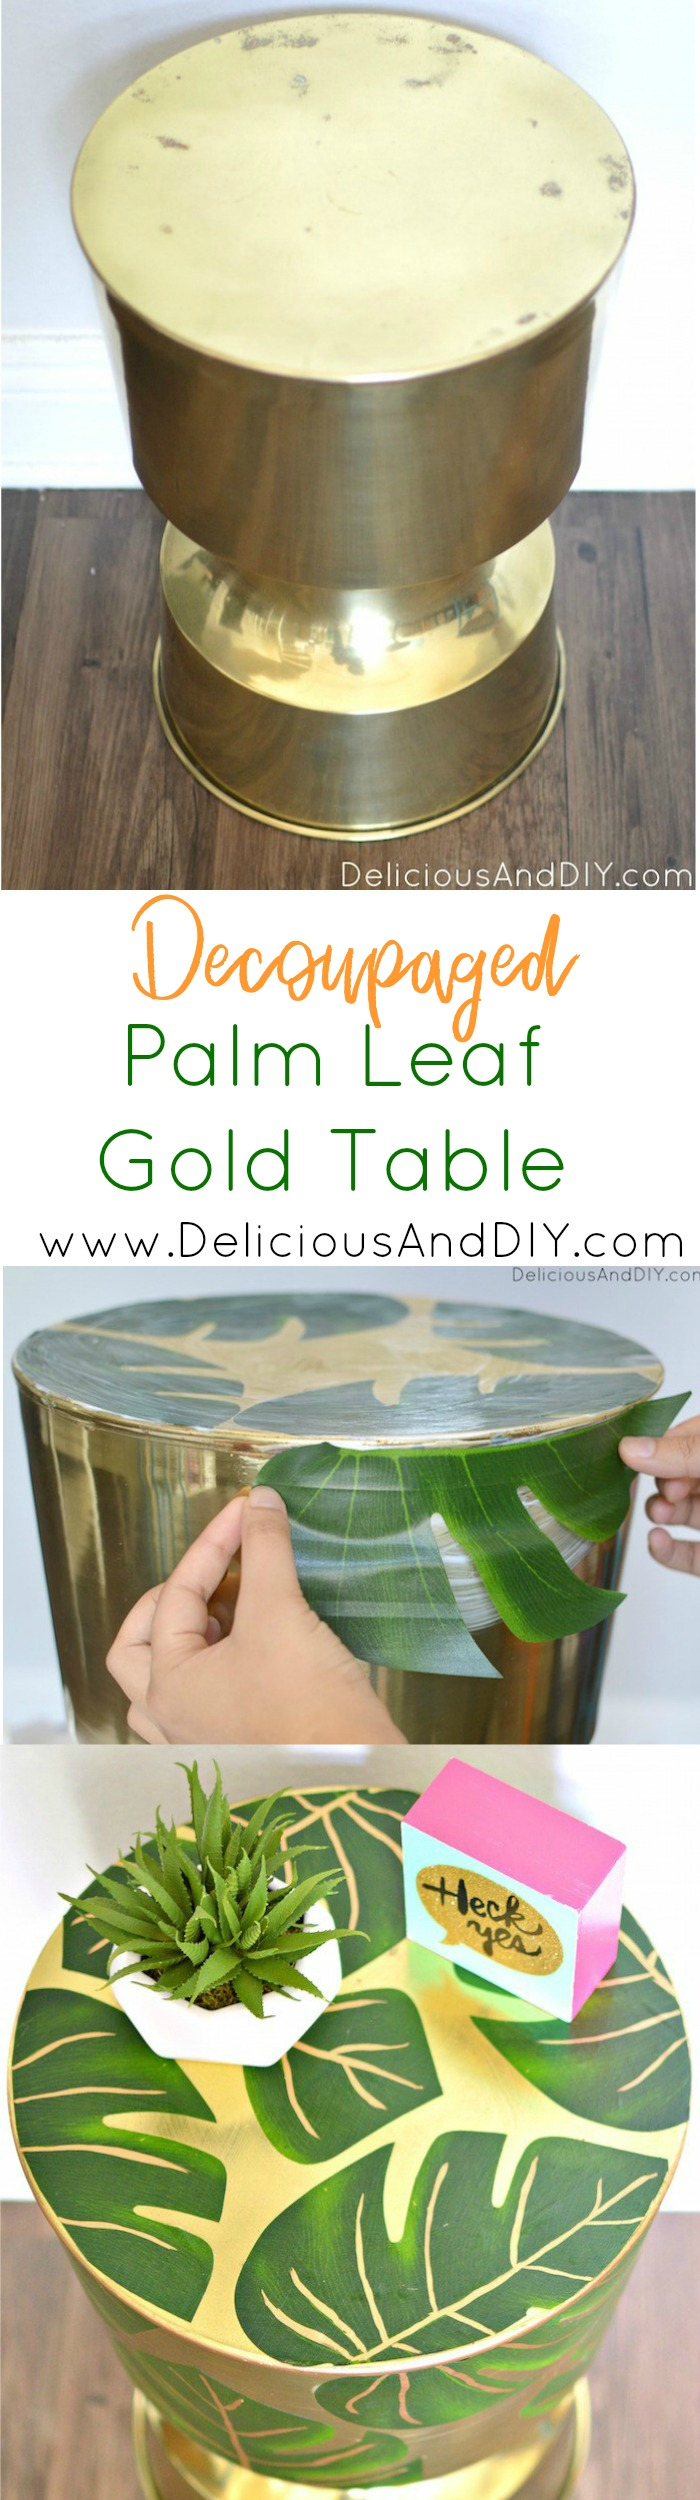 Palm Leaf Table| Palm Leaf Furniture| Modge Podge Projects| Gold Table Decor| Home Decor| Decoupaged Table|Decoupaged Projects|Palm Leaf Table